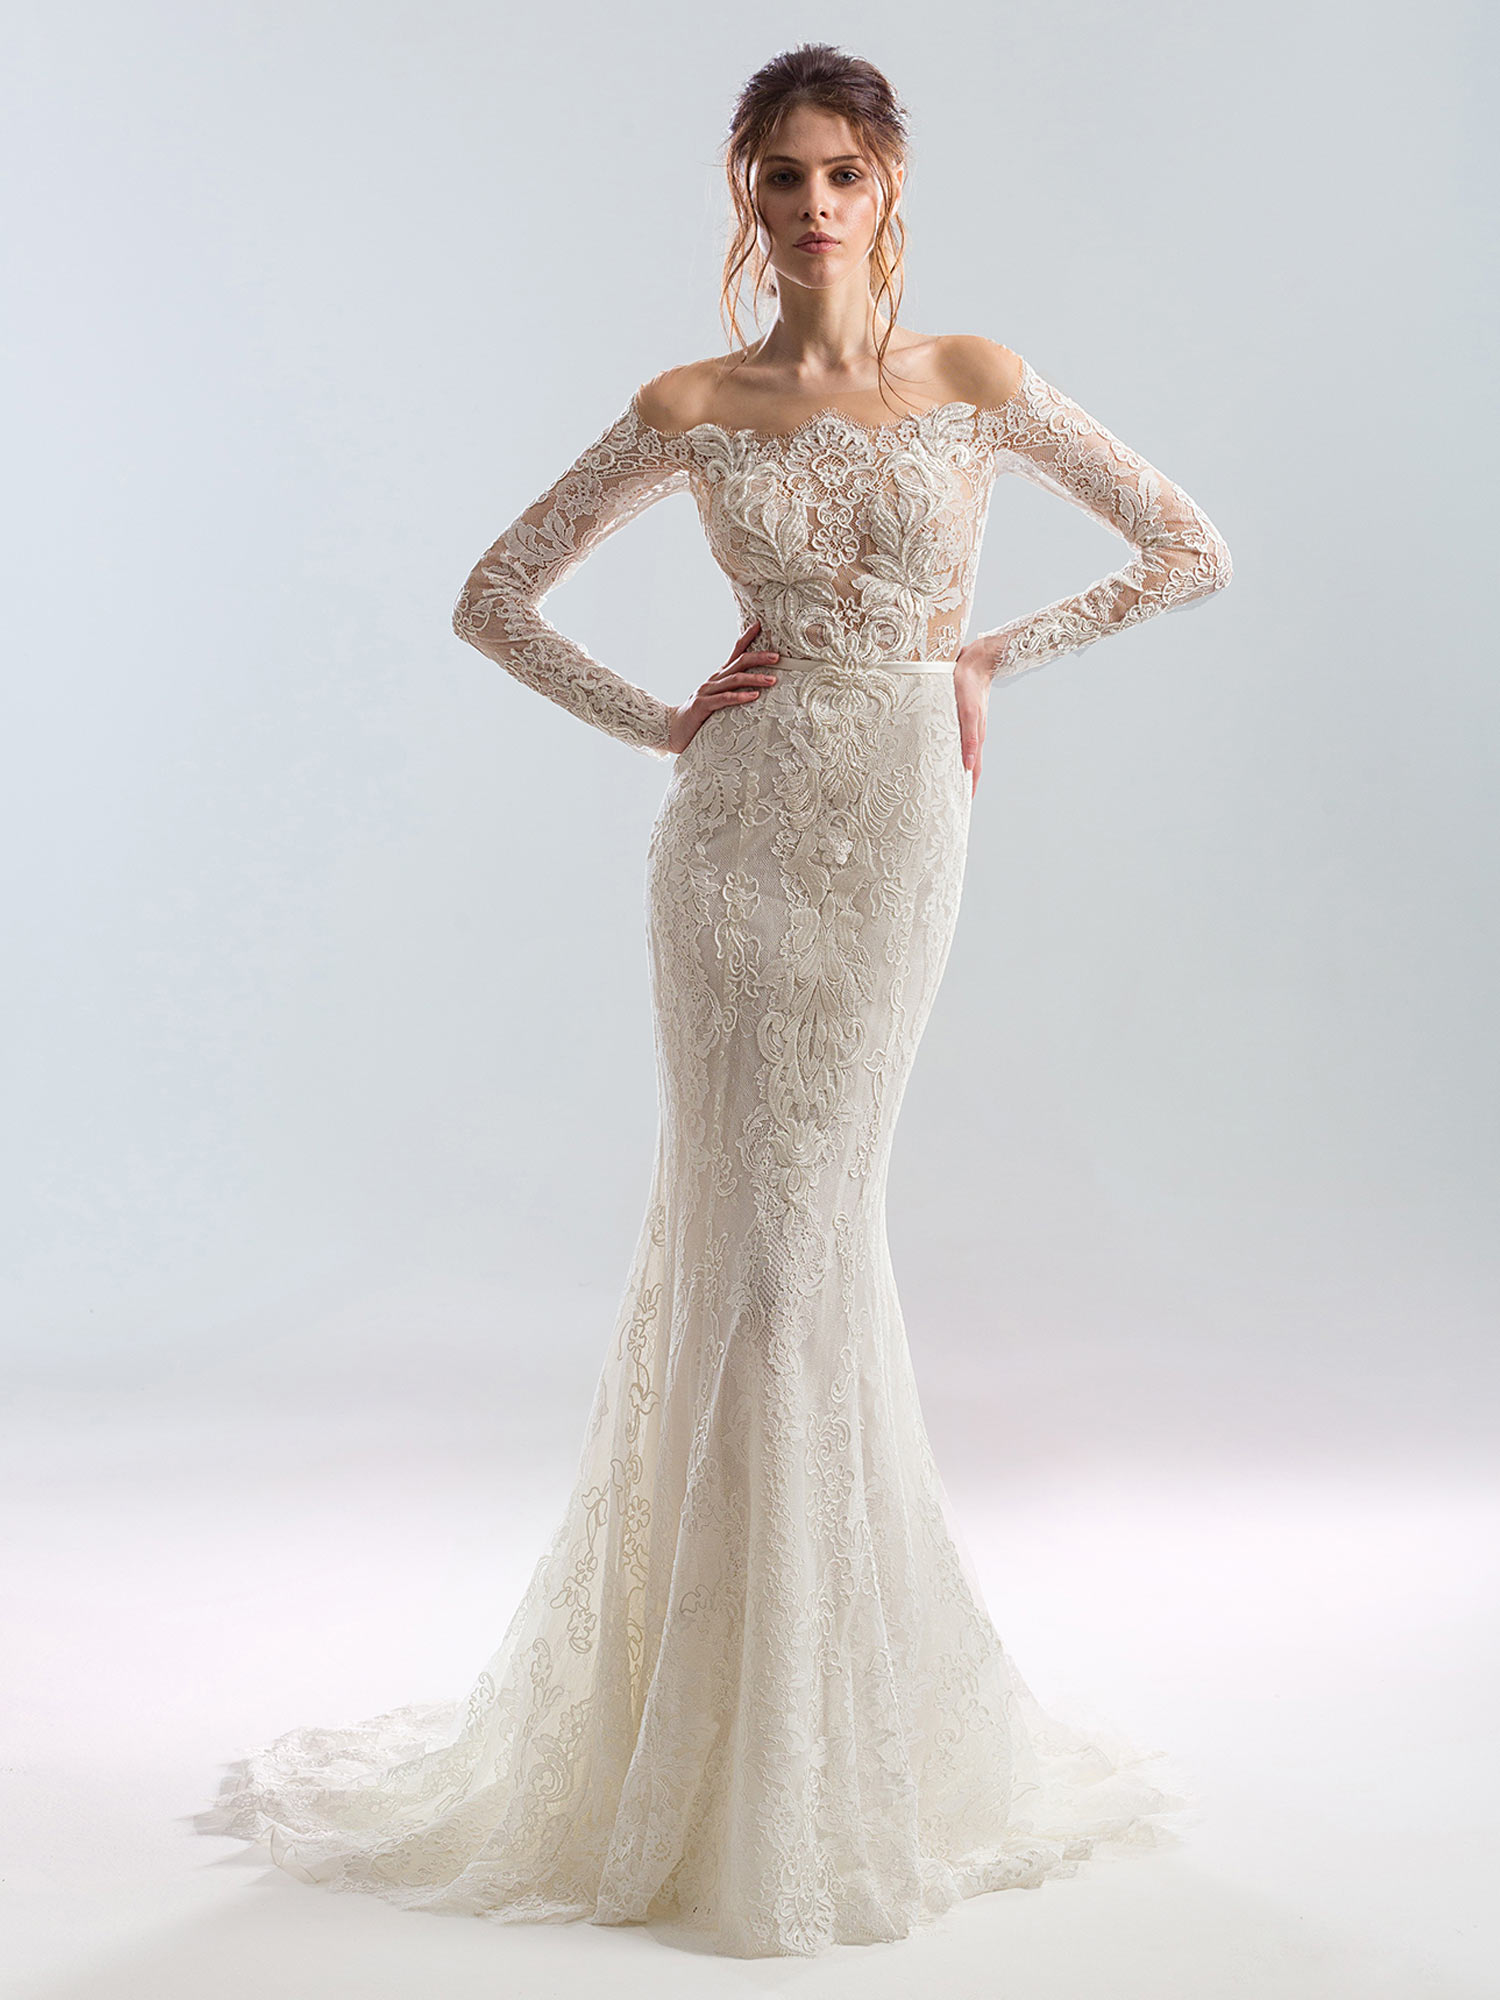 Style #1905L, available in ivory